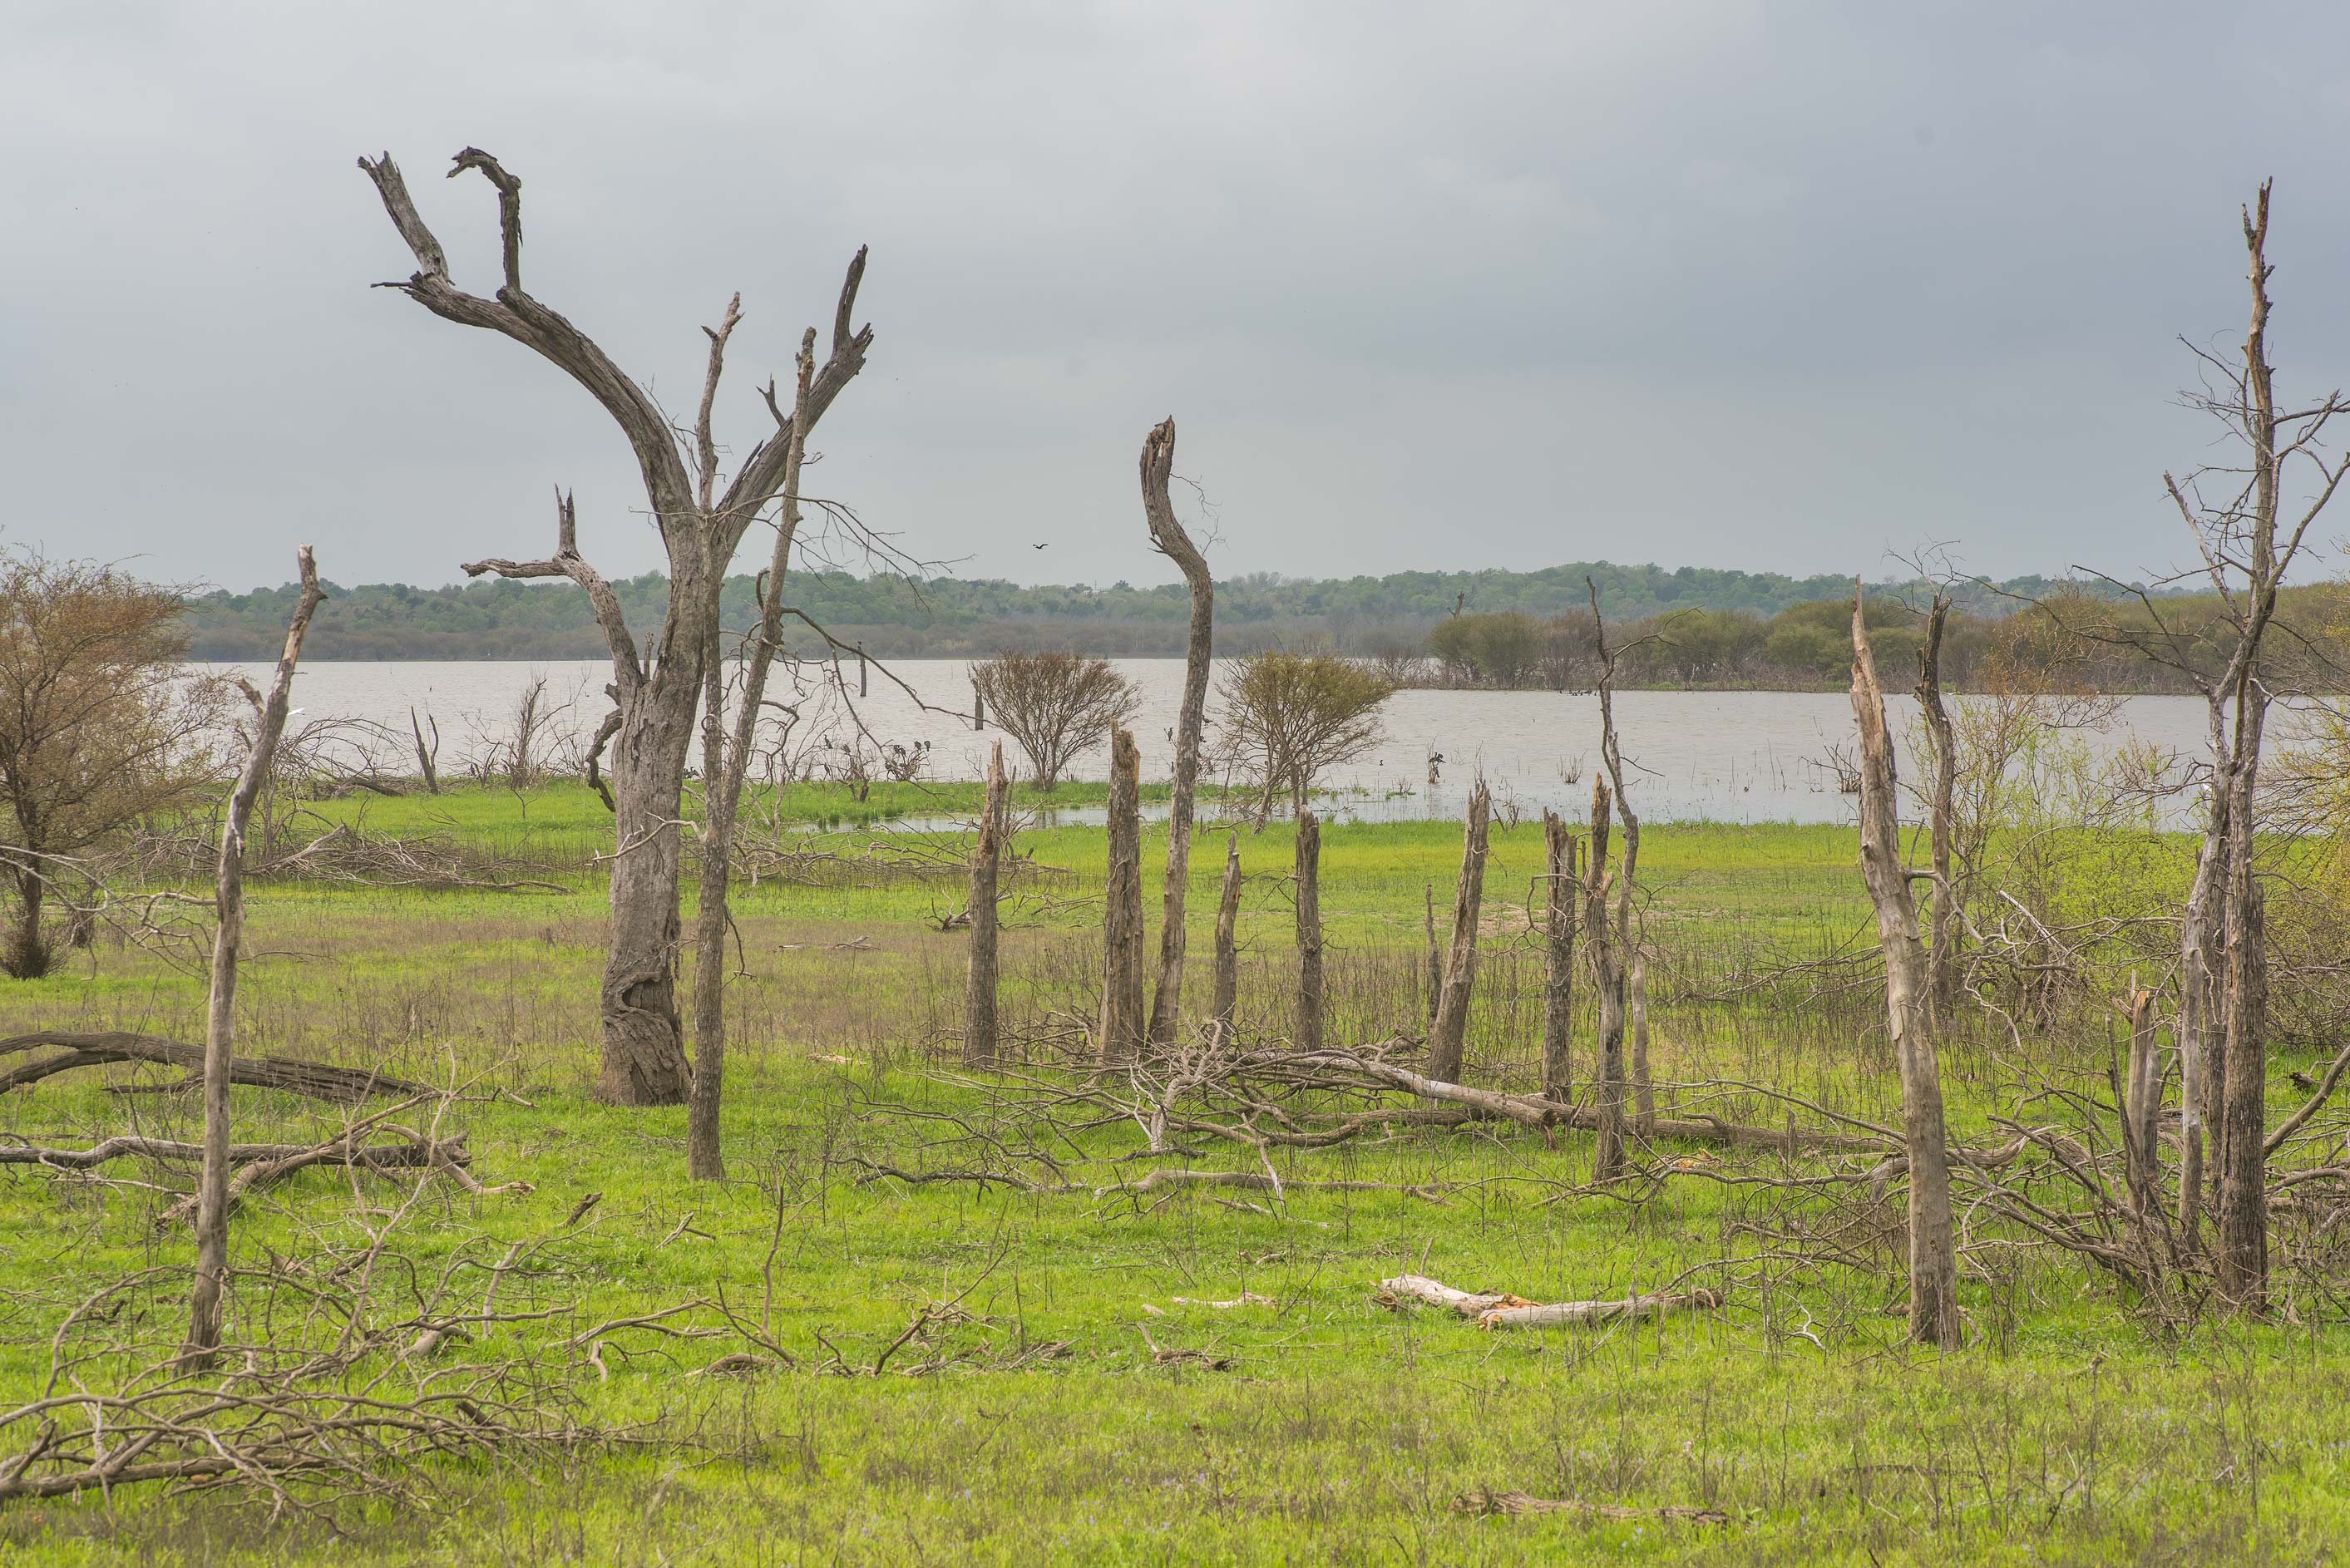 Dry oaks in a formerly flooded area at Lake...of Somerville Lake State Park. Texas